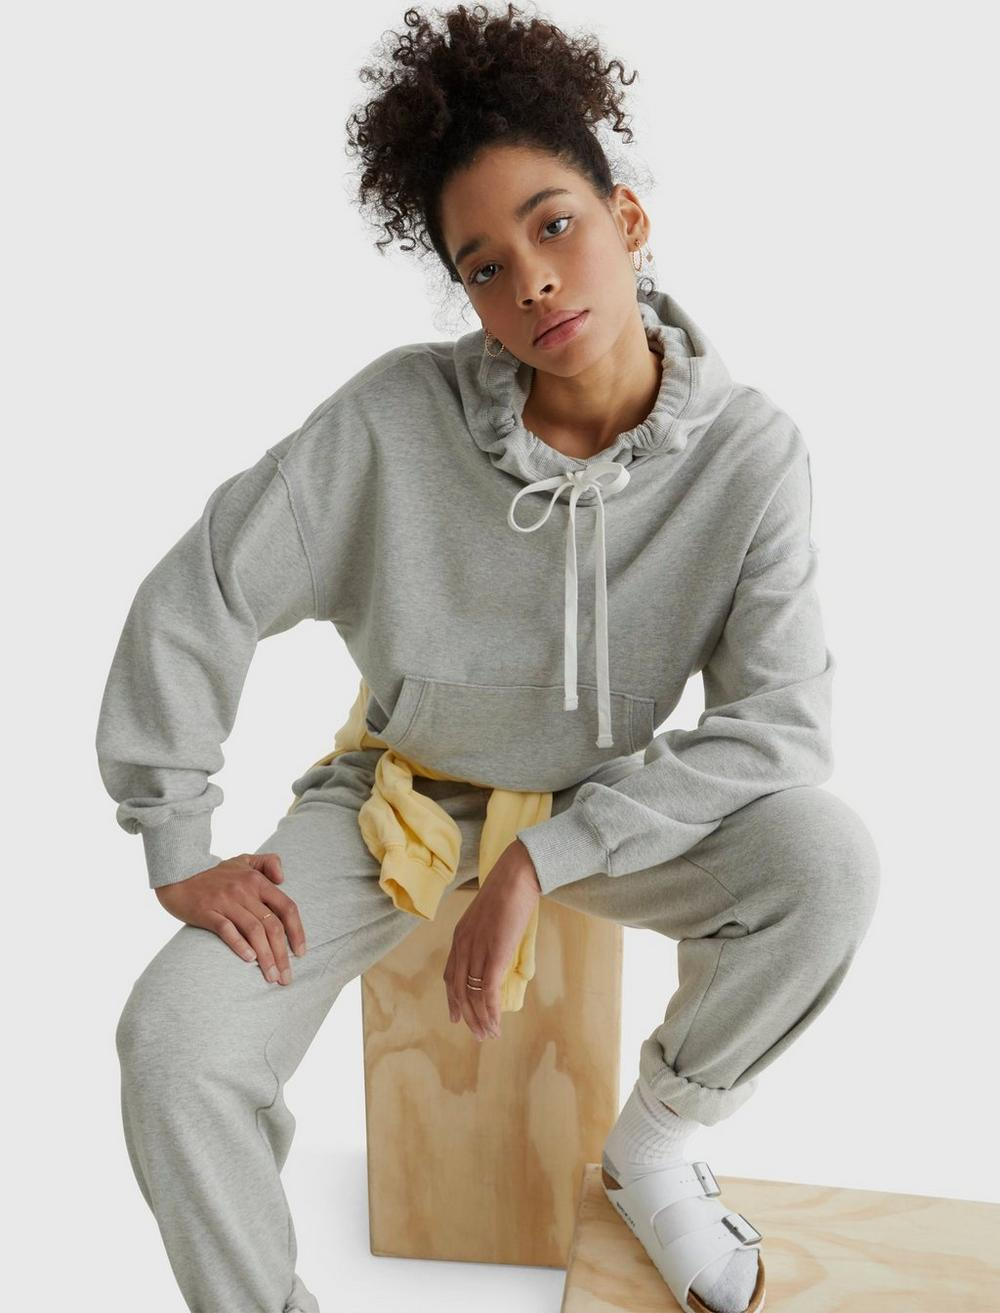 CHILL AT HOME FLEECE JOGGER, image 7